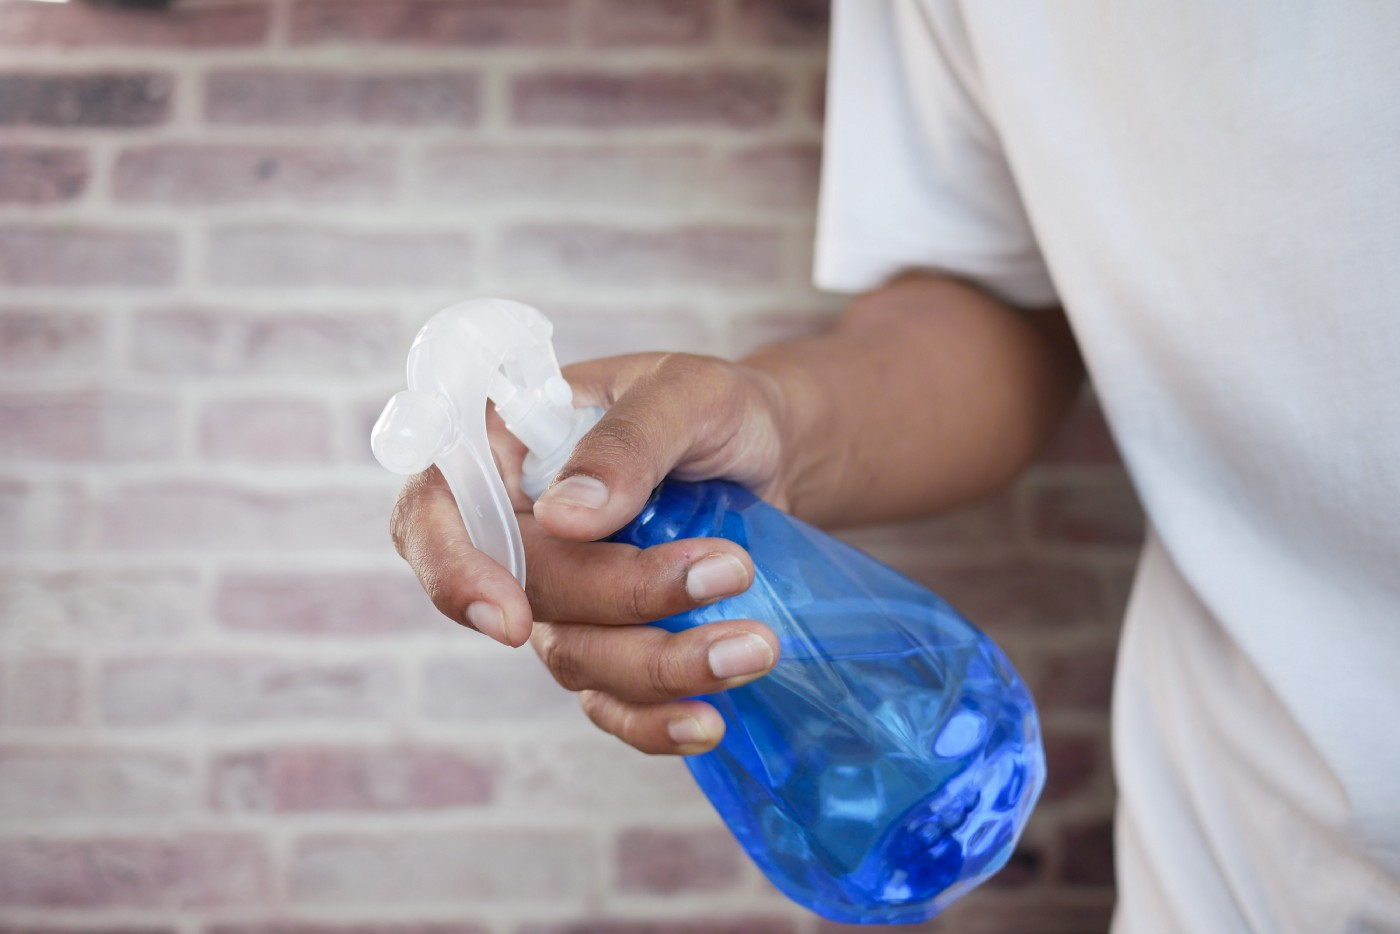 Unsplash stock photo showing a person's hand holding a spray bottle filled with blue cleaning liquid.